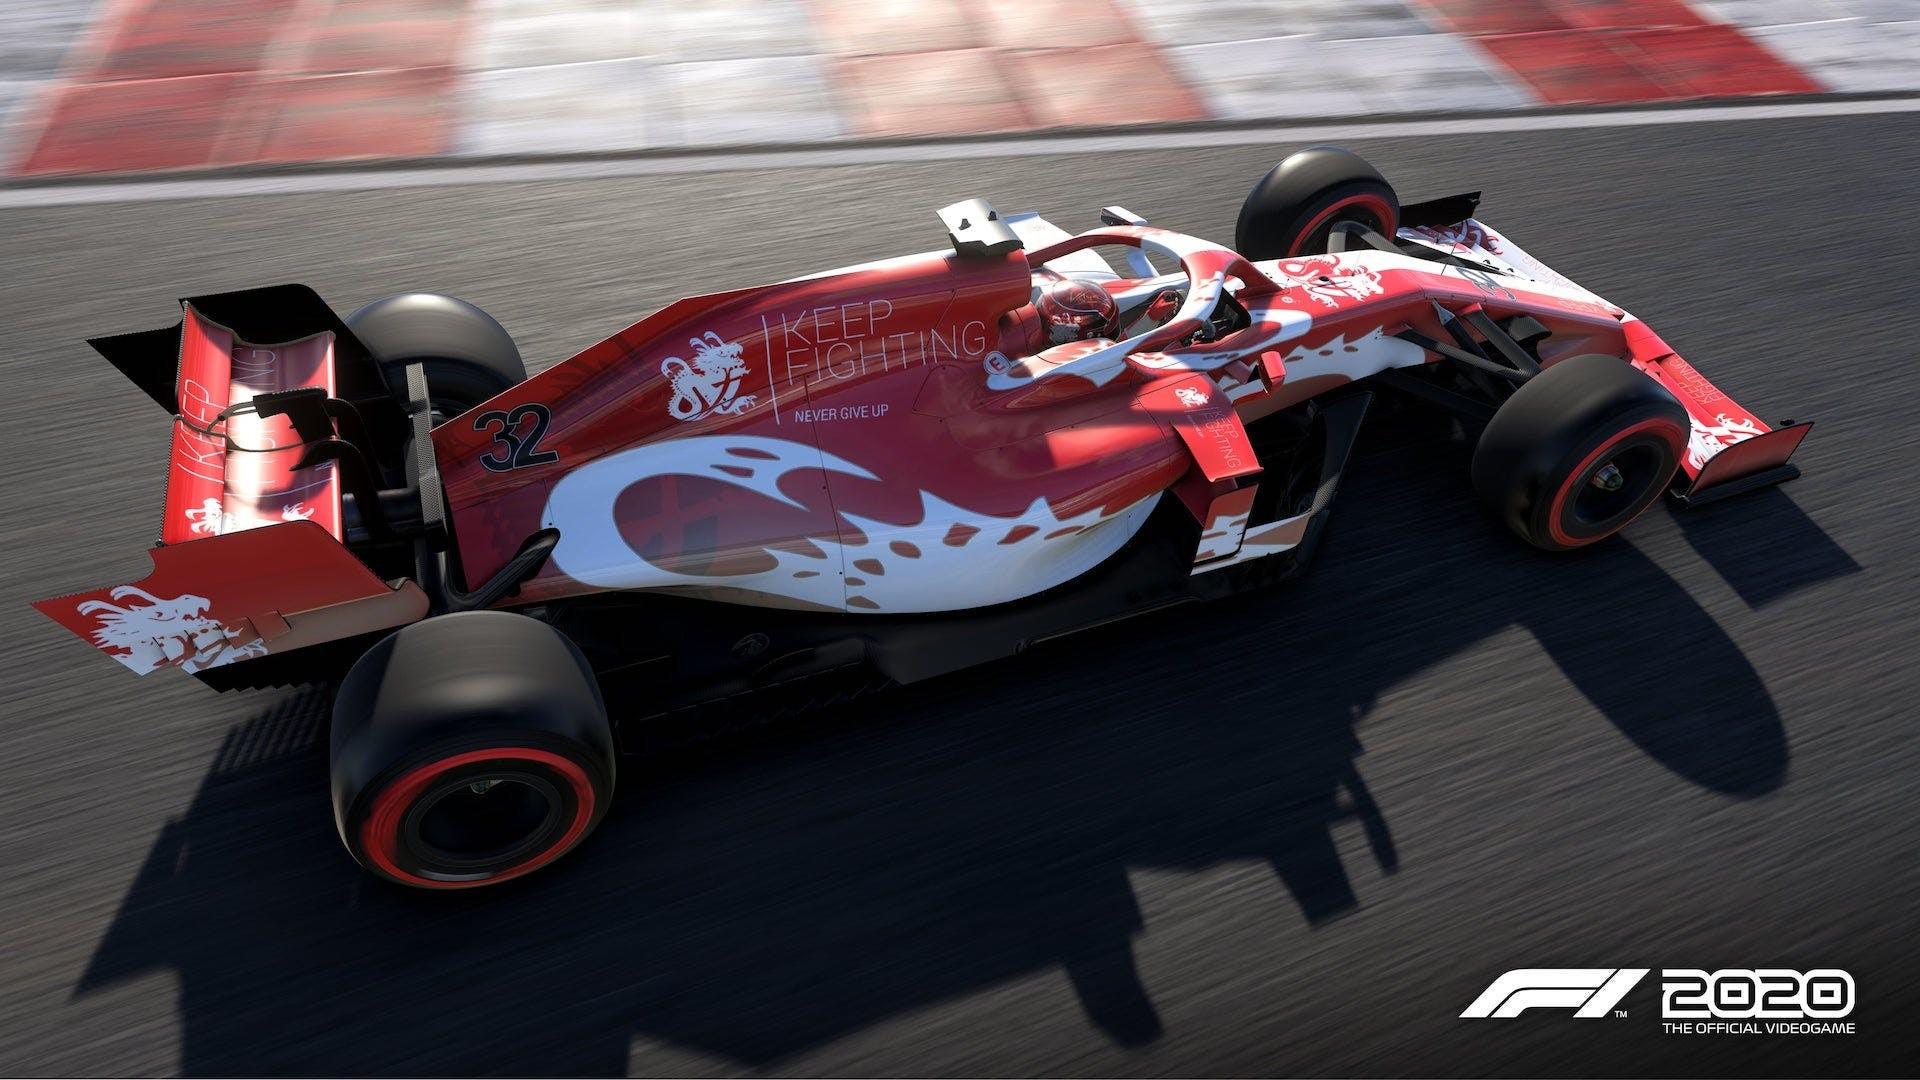 F1 2020 Supports Keep Fighting Foundation In Honour Of Michael Schumacher